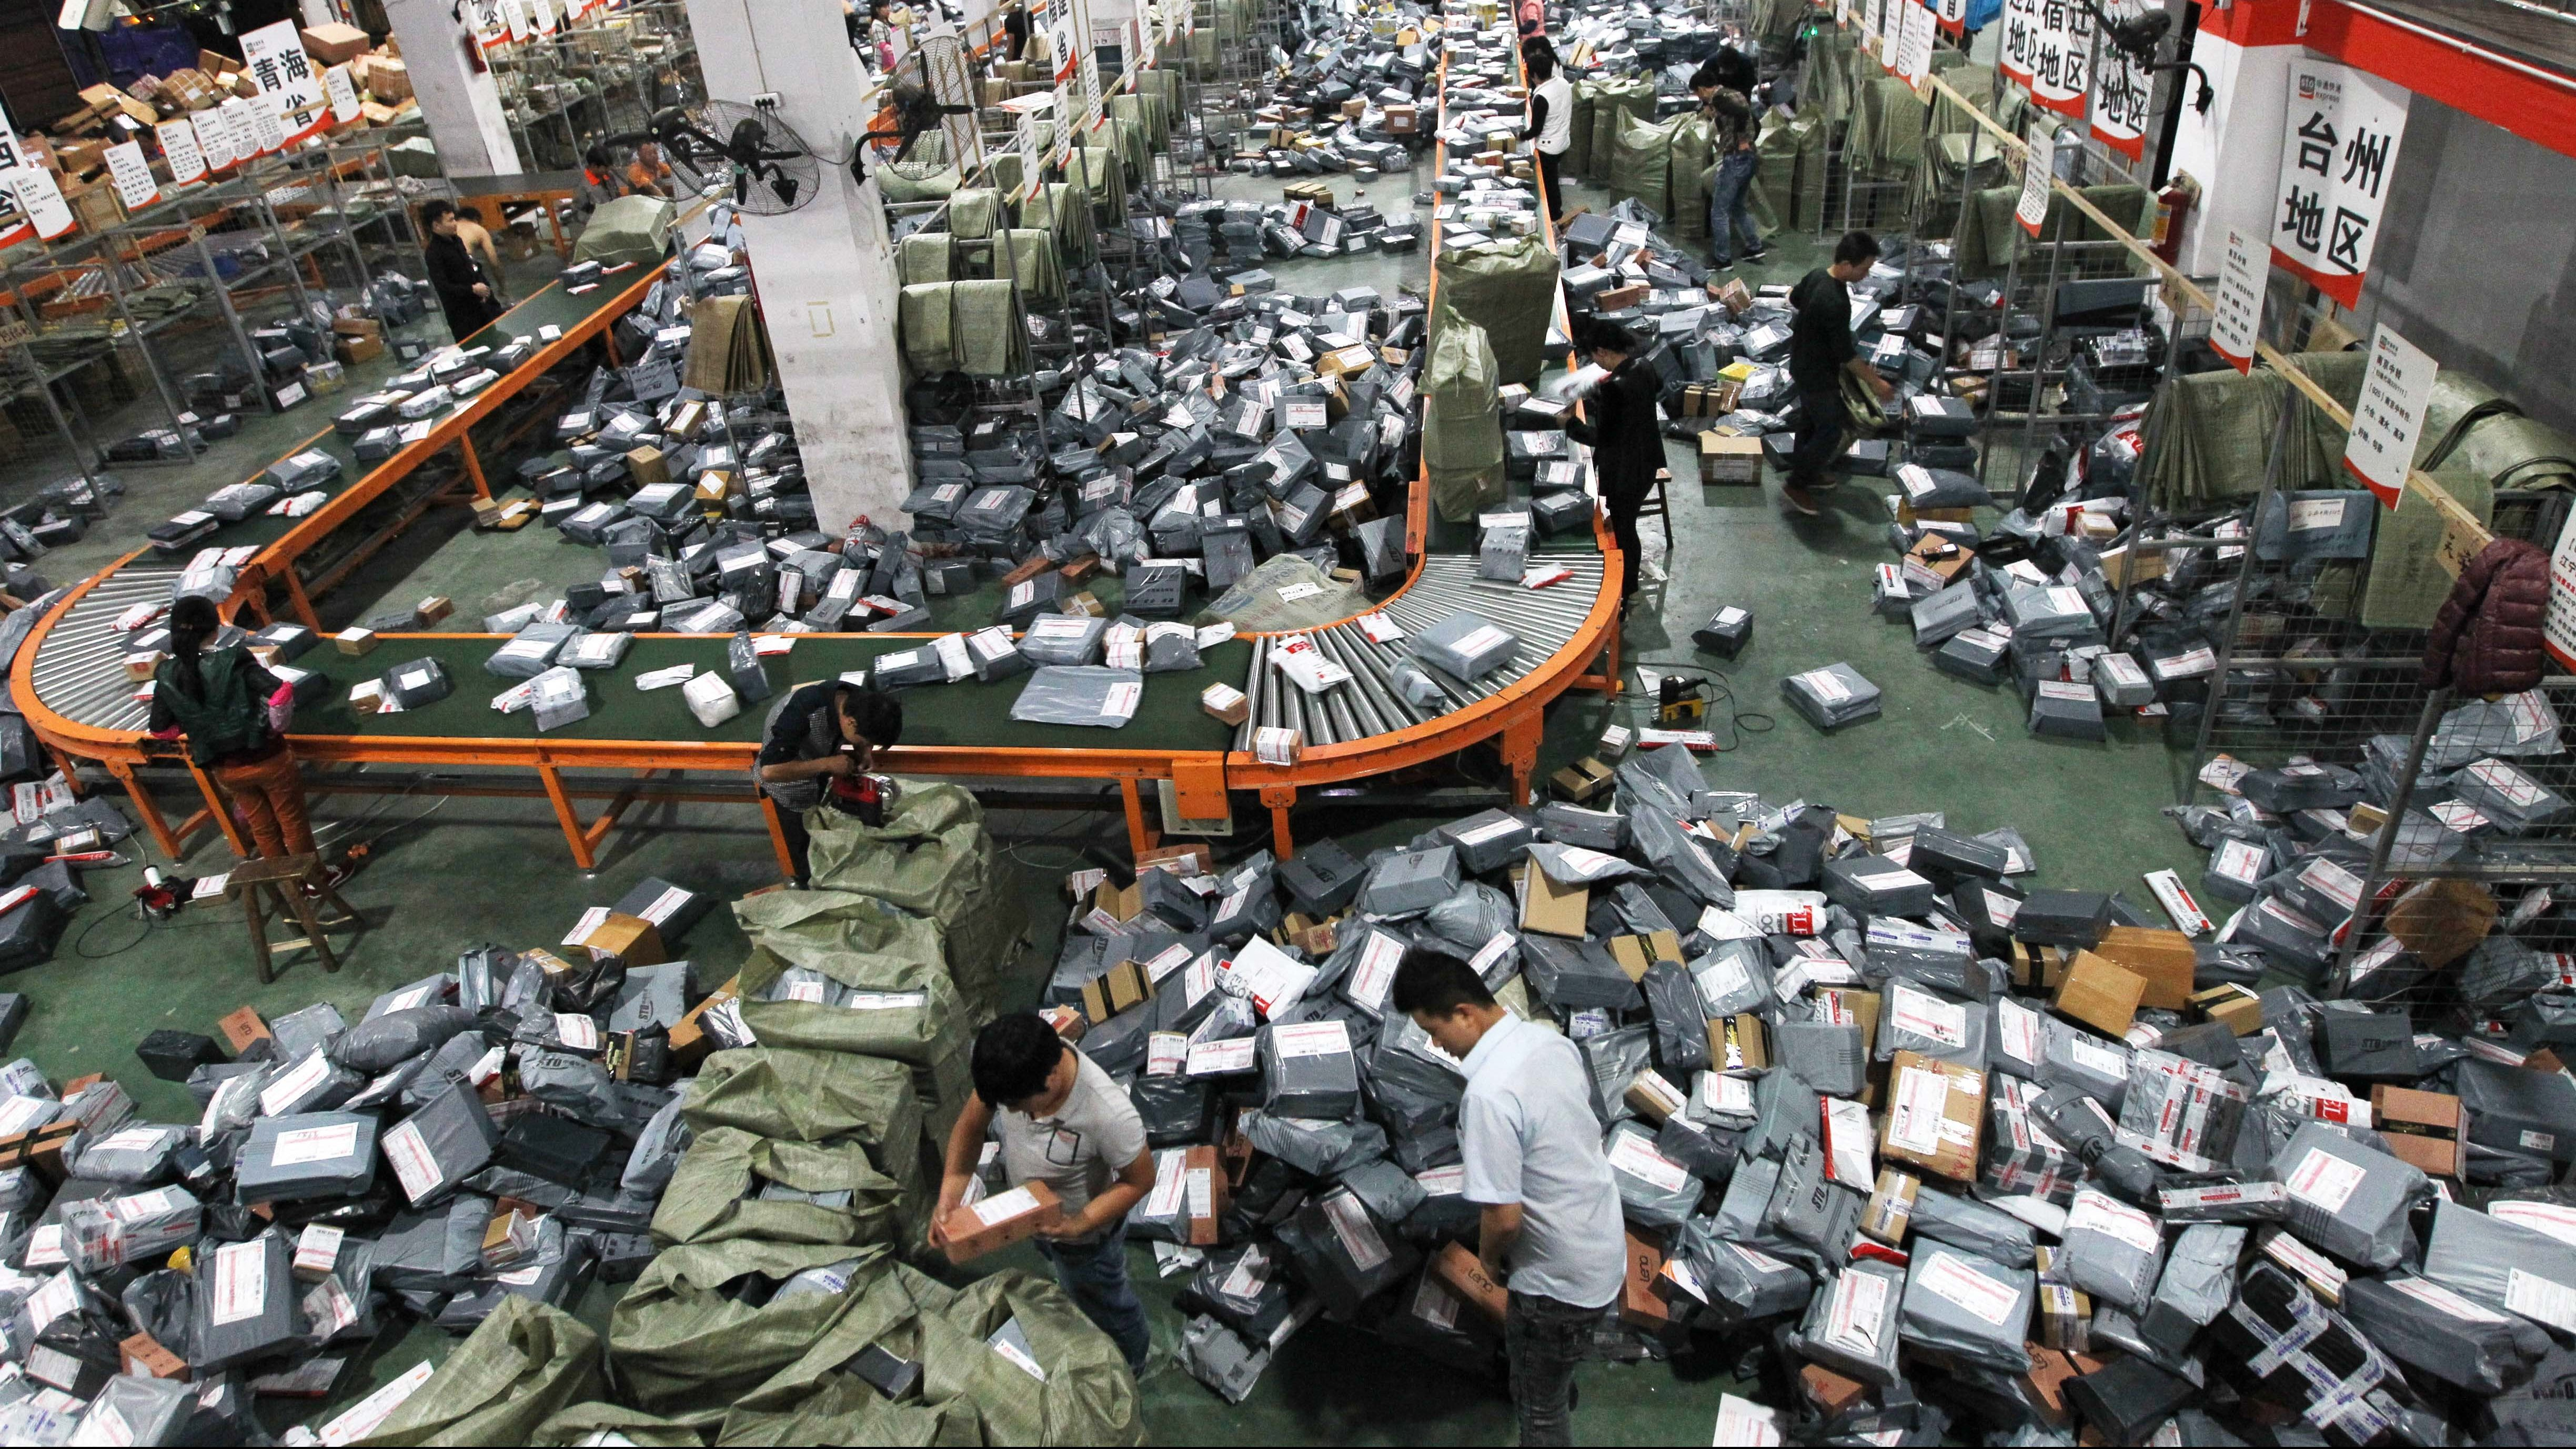 Tens of thousands of packages wait to be sorted and delivered.